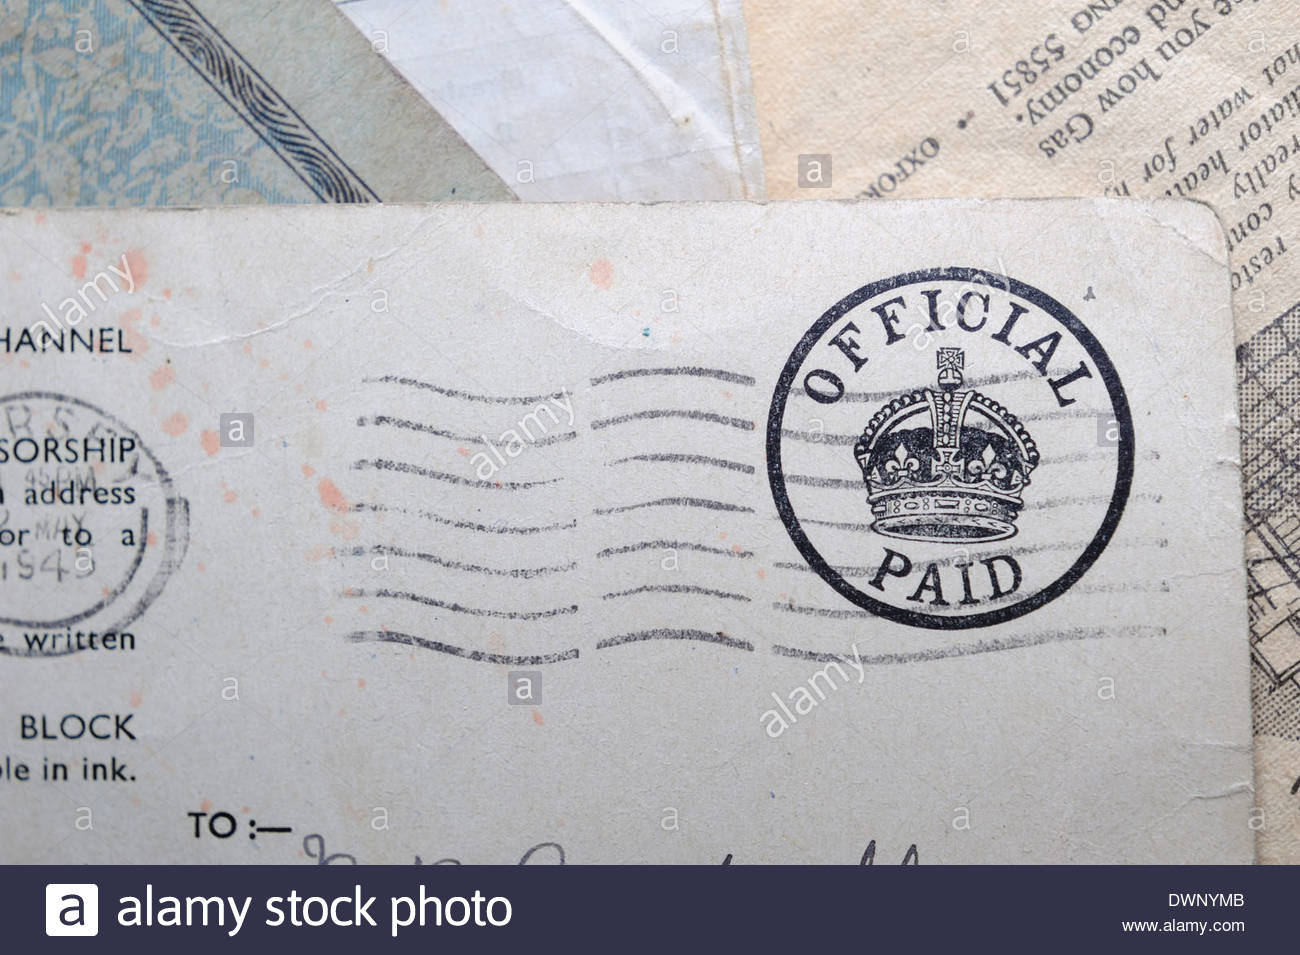 Official Paid stamp on a postcard from Jersey immediately after WWII. - Stock Image